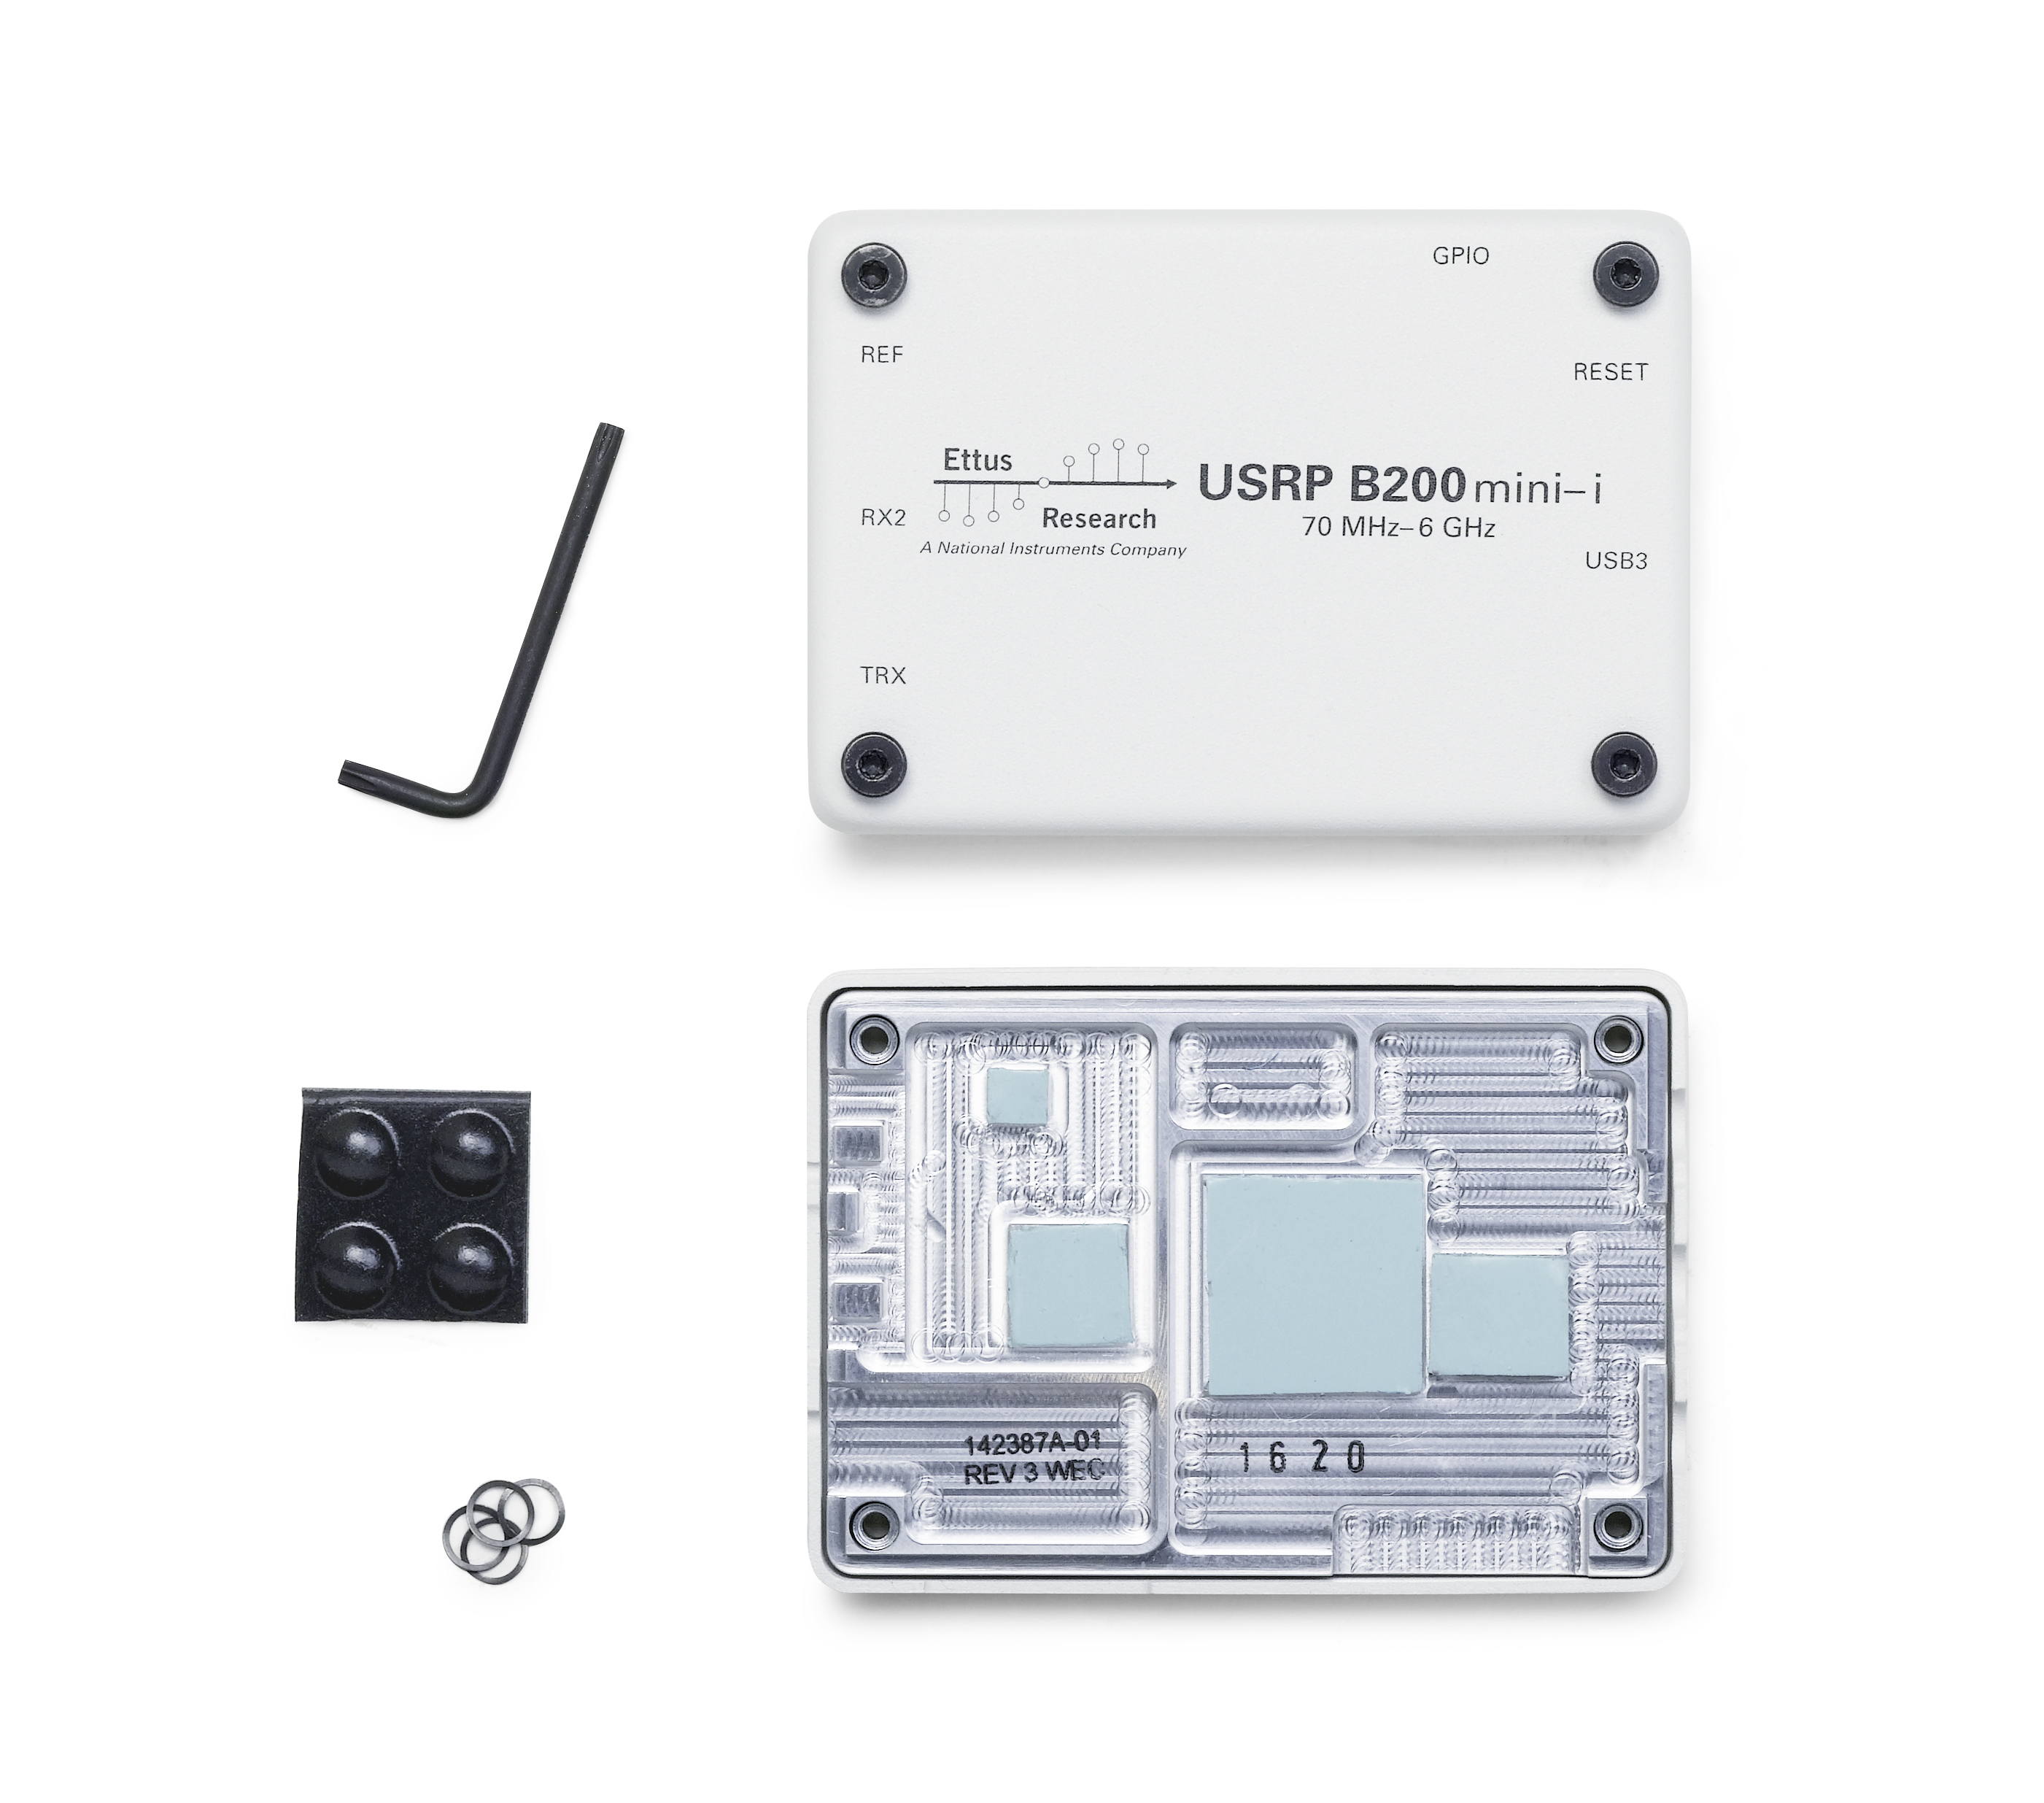 Product - Enclosure Kit for USRP B200mini-i (I-Grade)